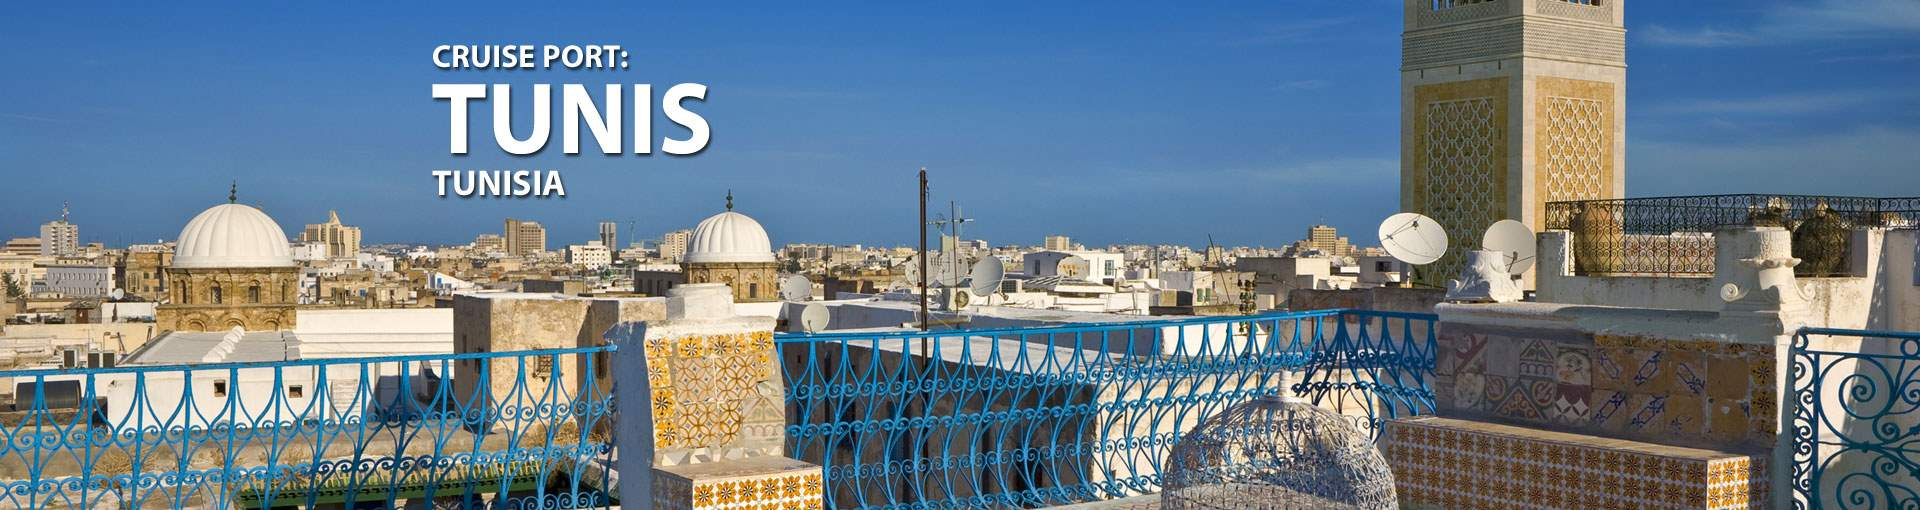 Cruises to Tunis, Tunisia